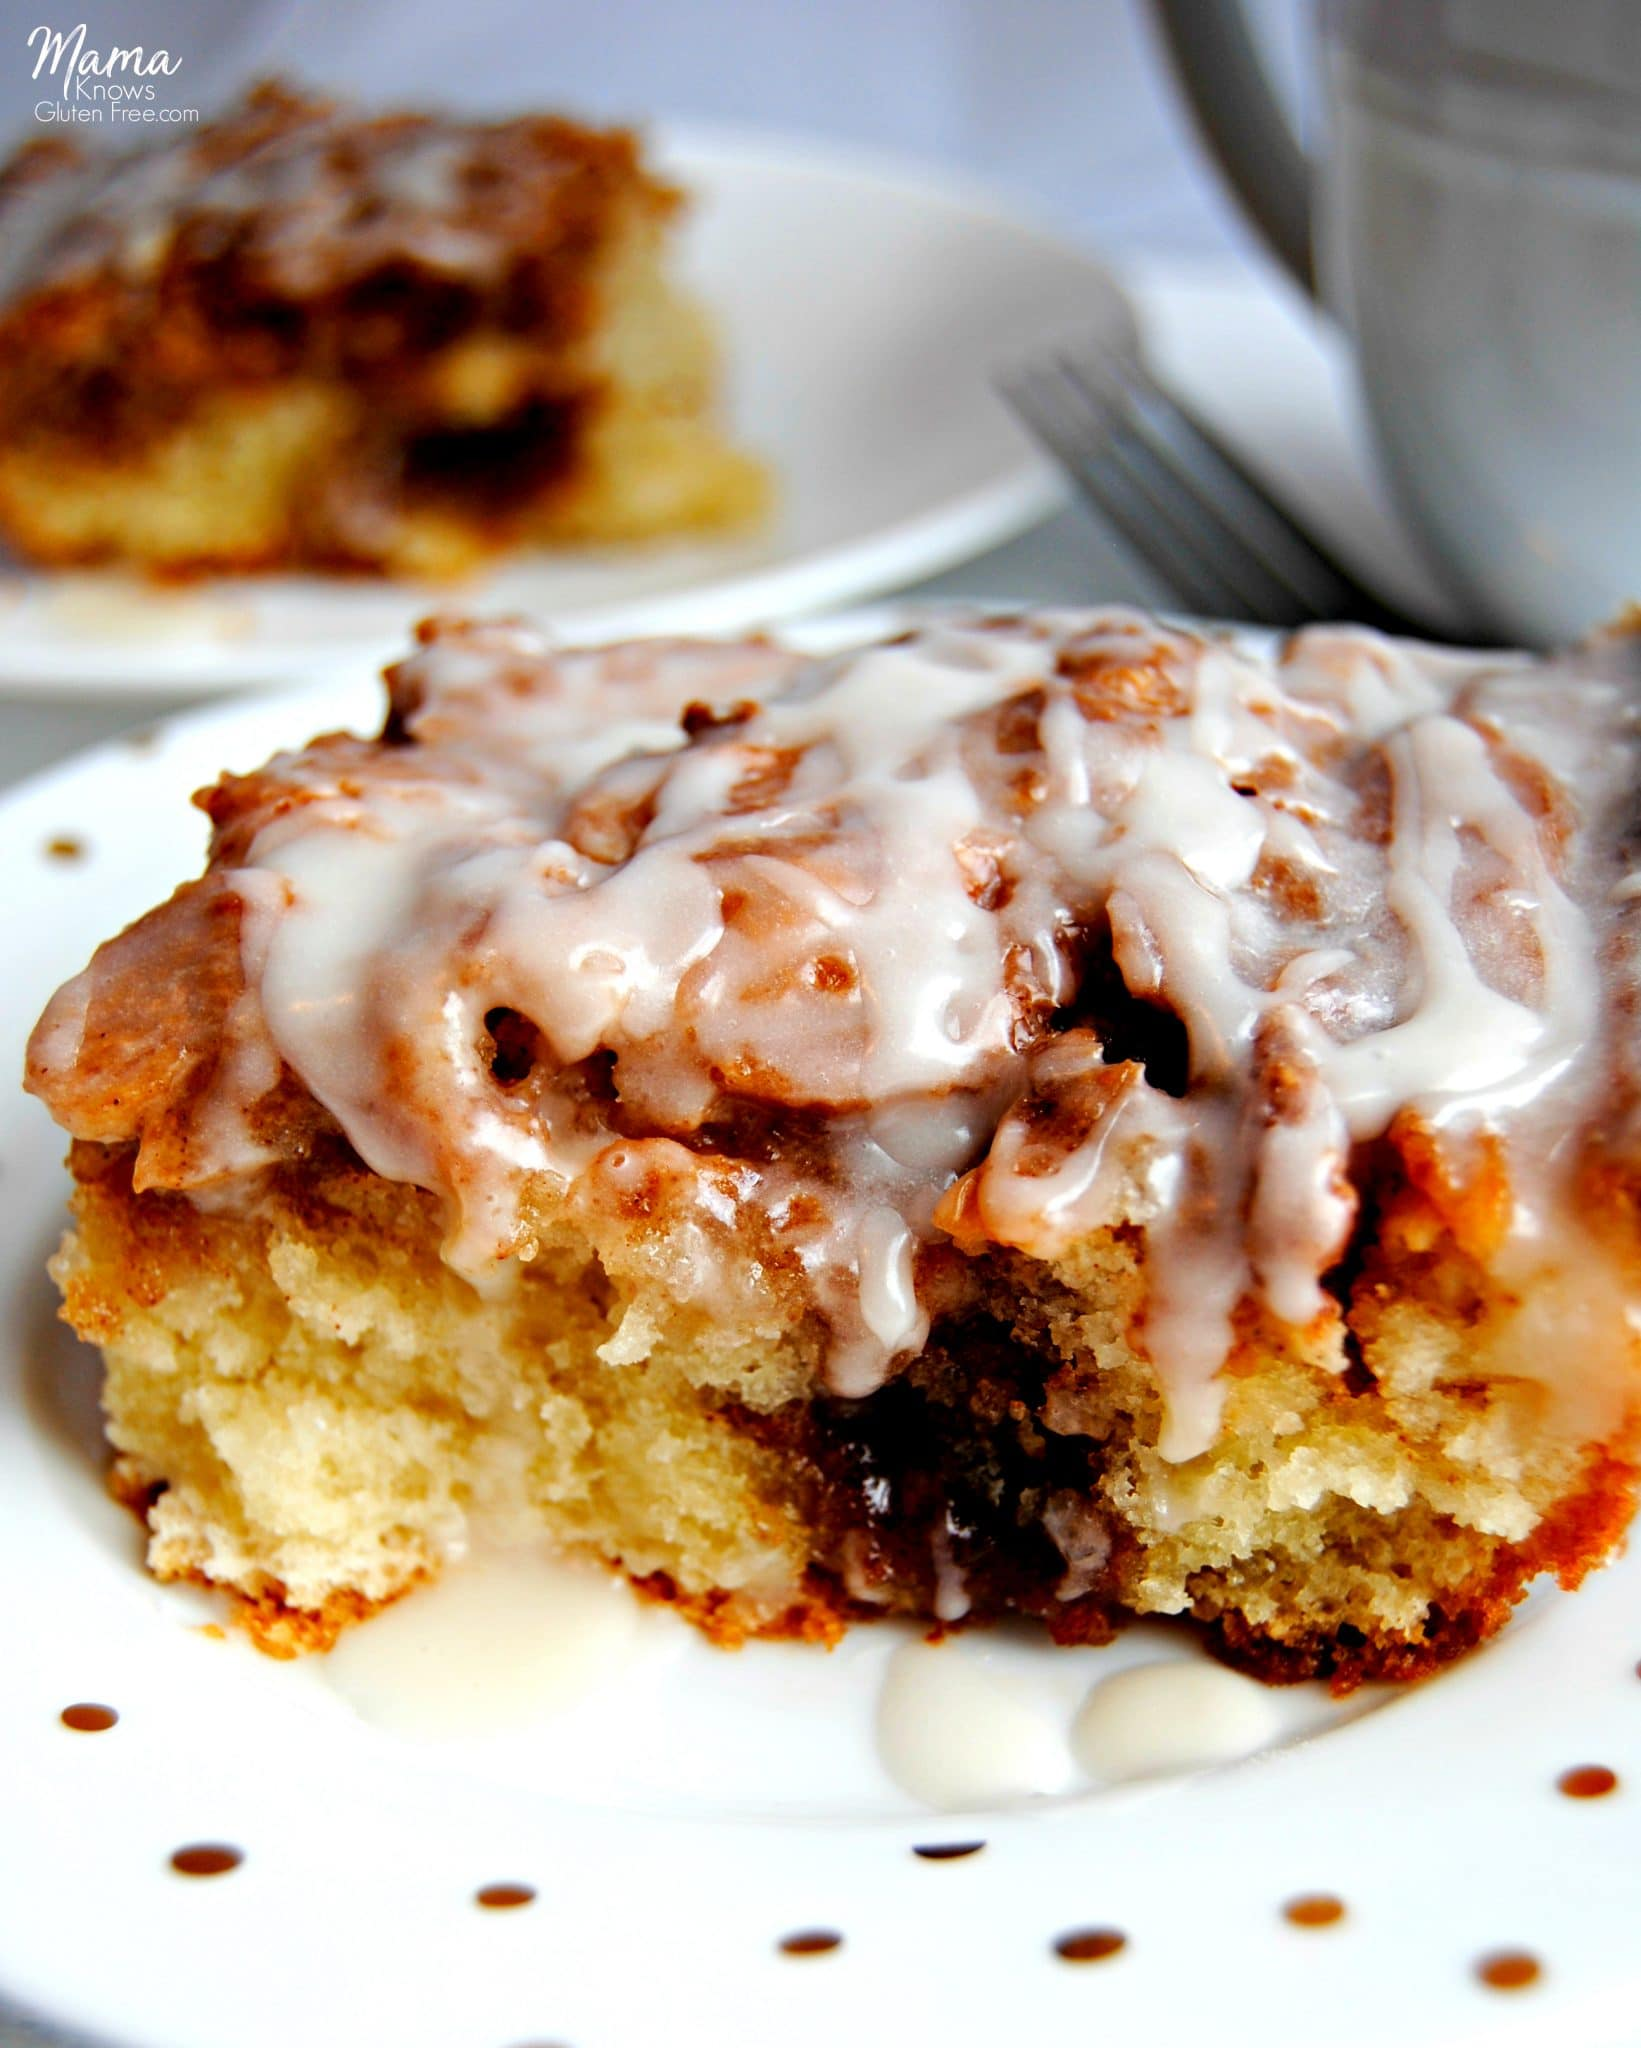 Cinnamon Roll Cake Recipe Video